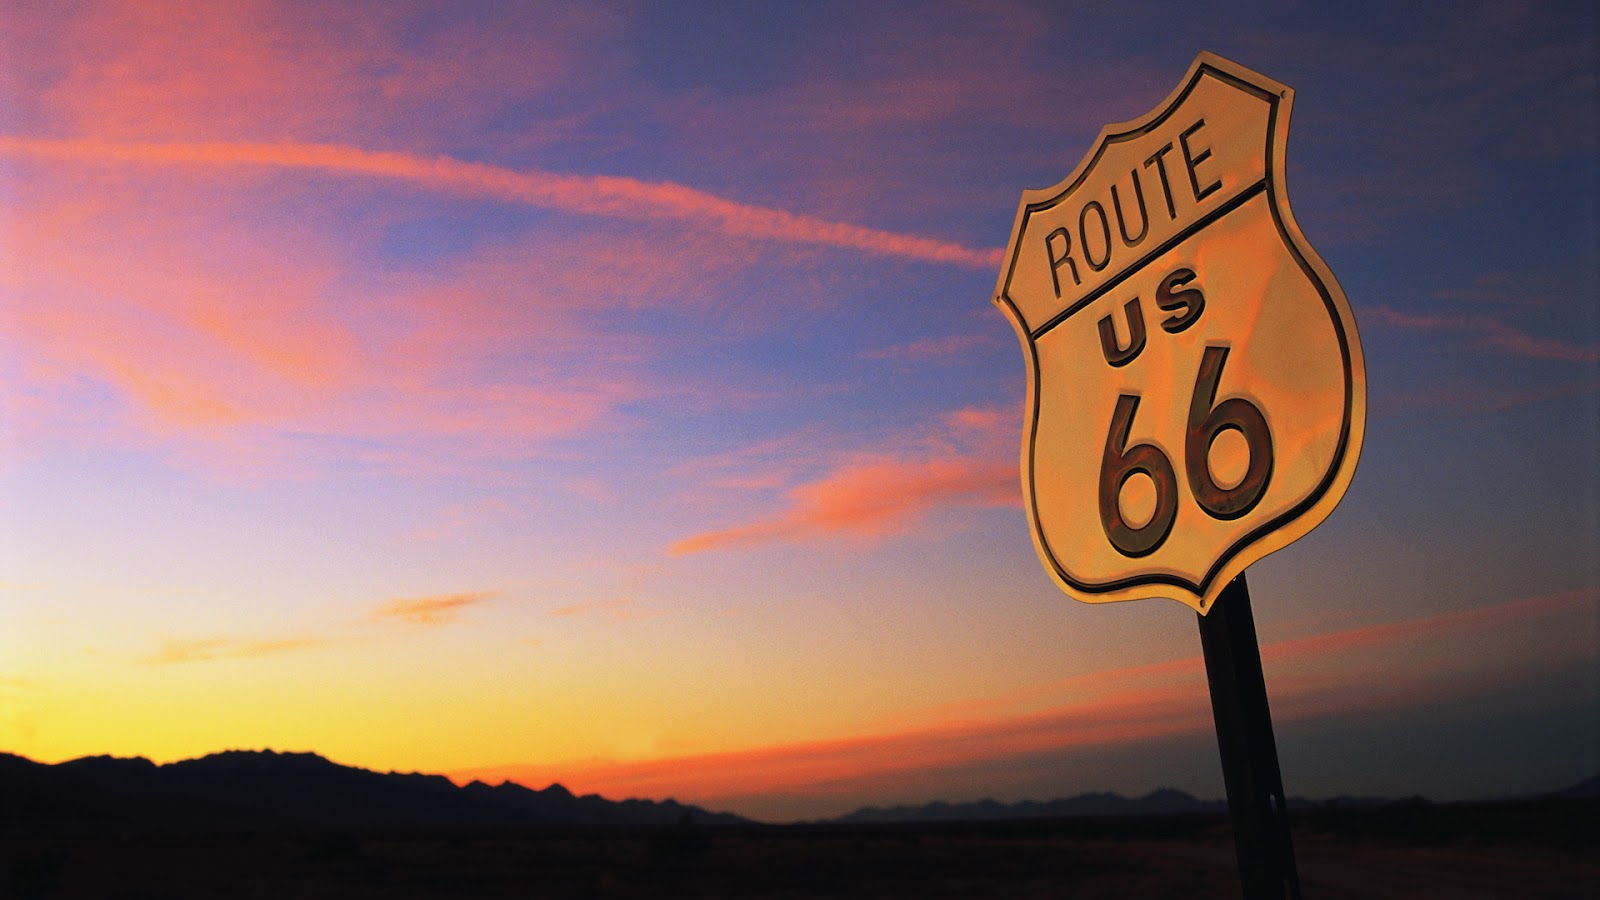 4 excellent hd route 66 wallpapers - hdwallsource